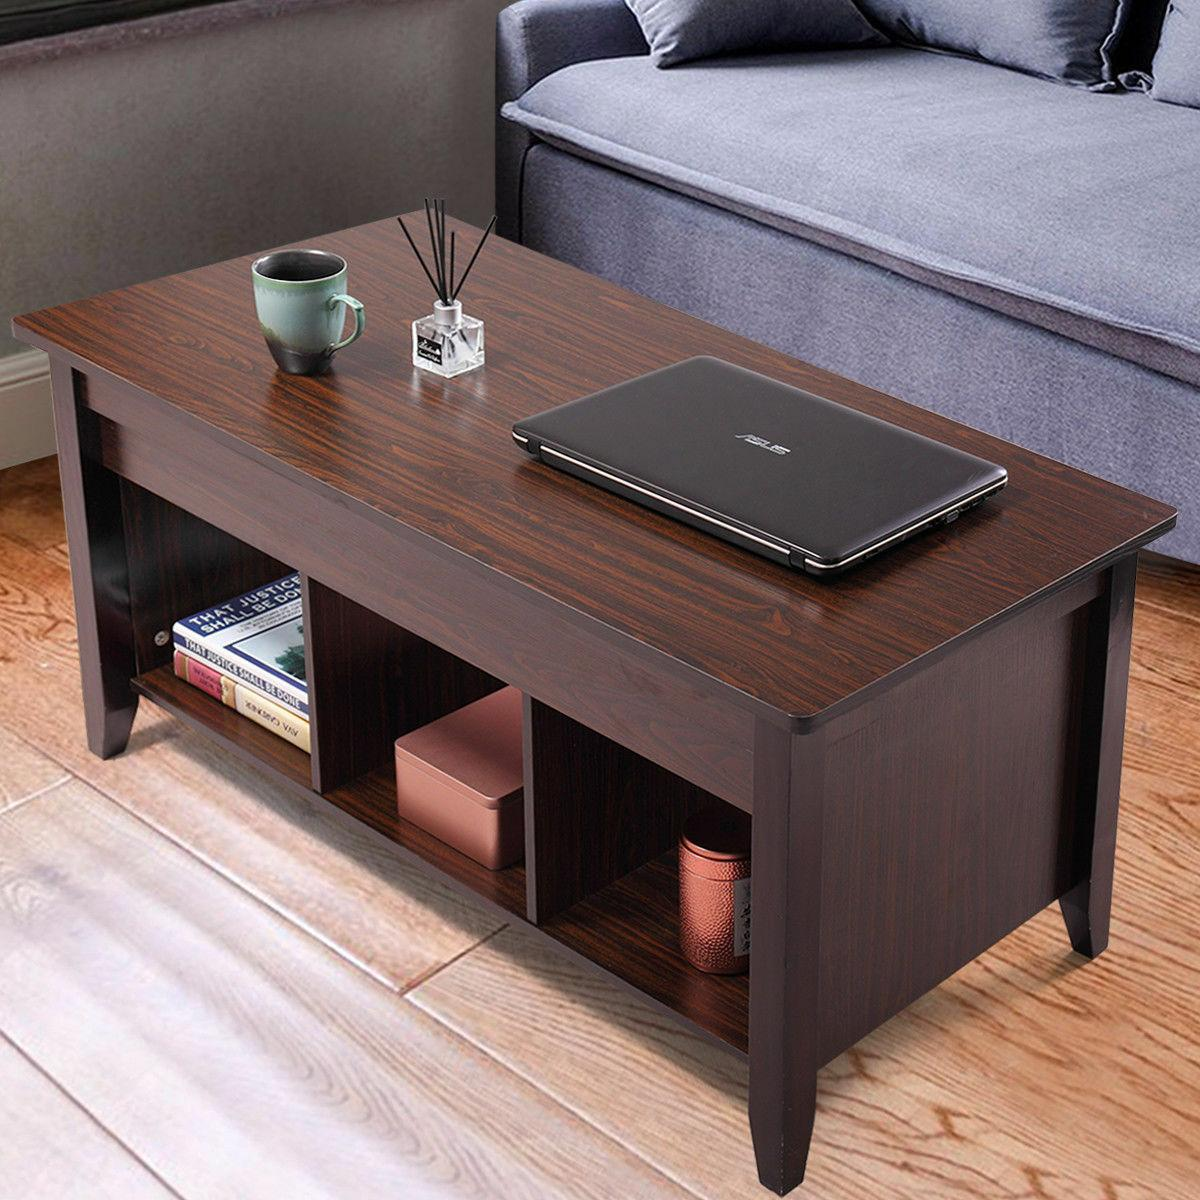 Lift Top Coffee Table w/ Storage Shelf Living Room Furniture